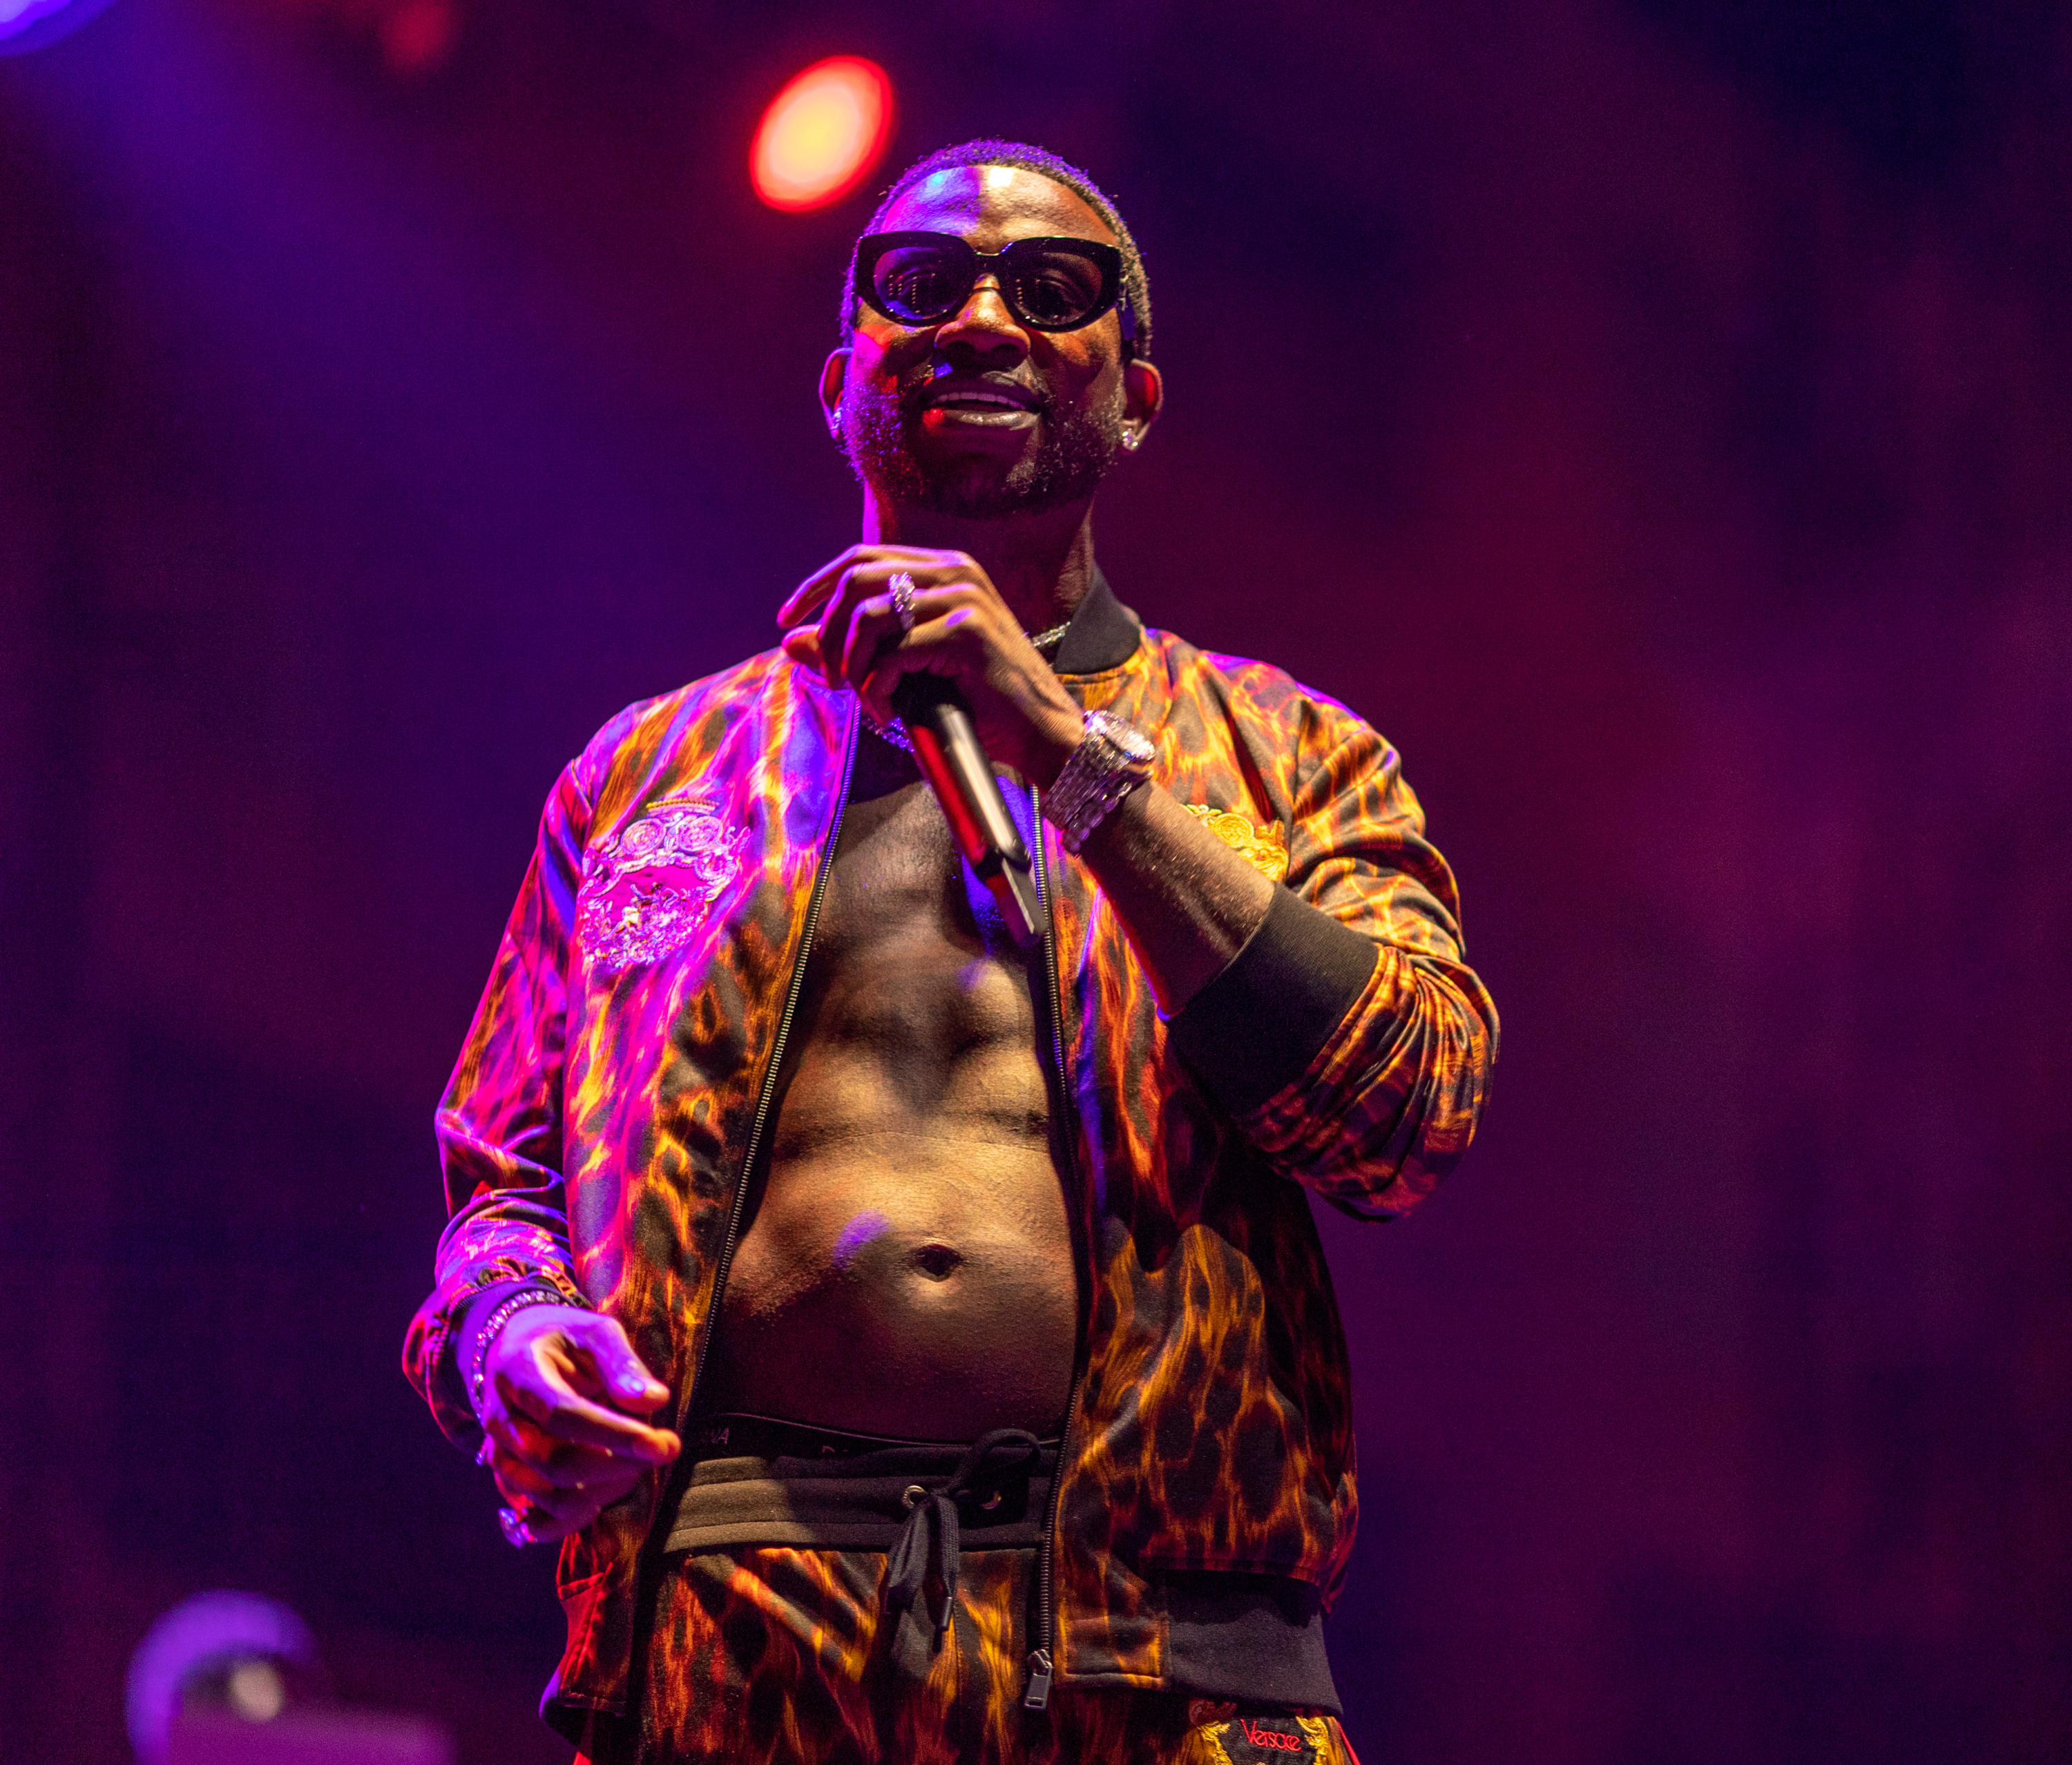 Rolling Loud festival returns to Bay Area with rap heavyweights